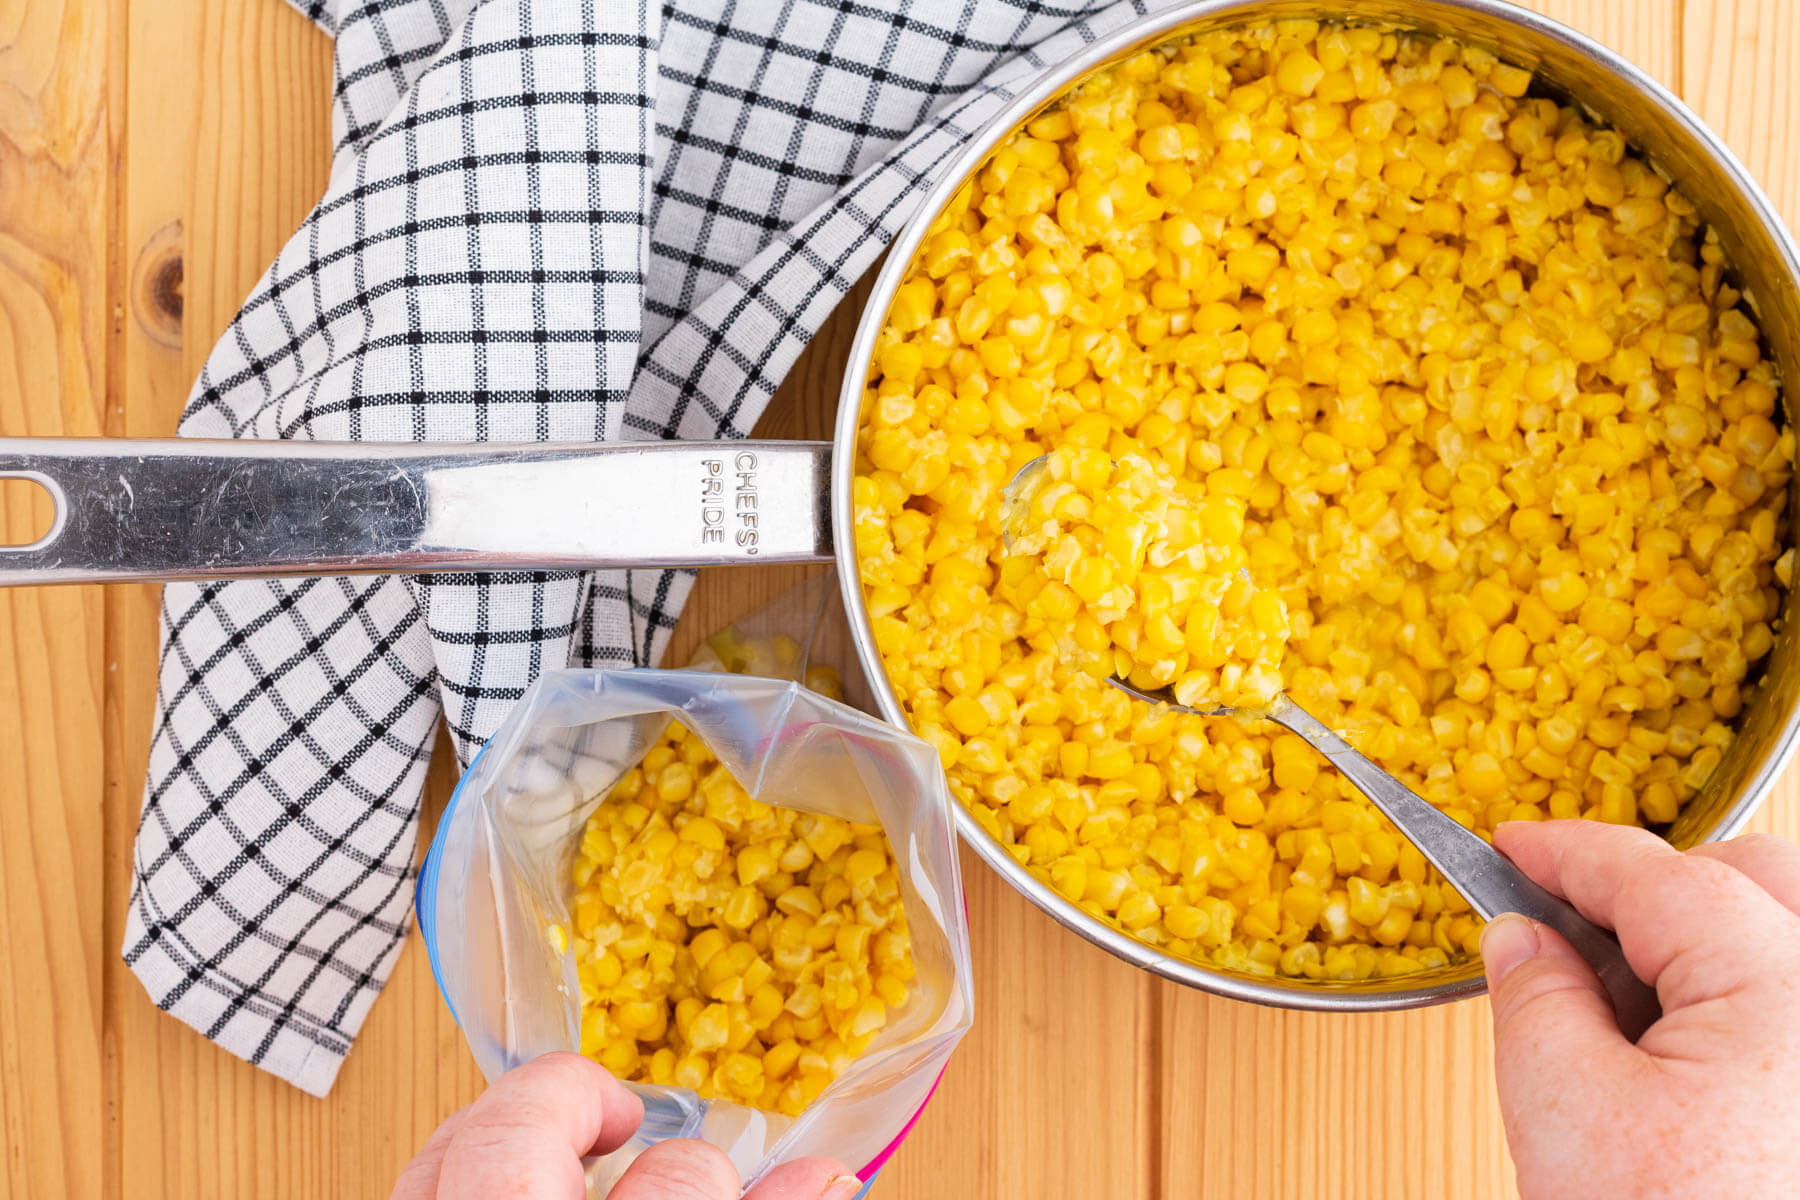 Filling up a freezer bag with corn from a saucepan filled with yellow corn.